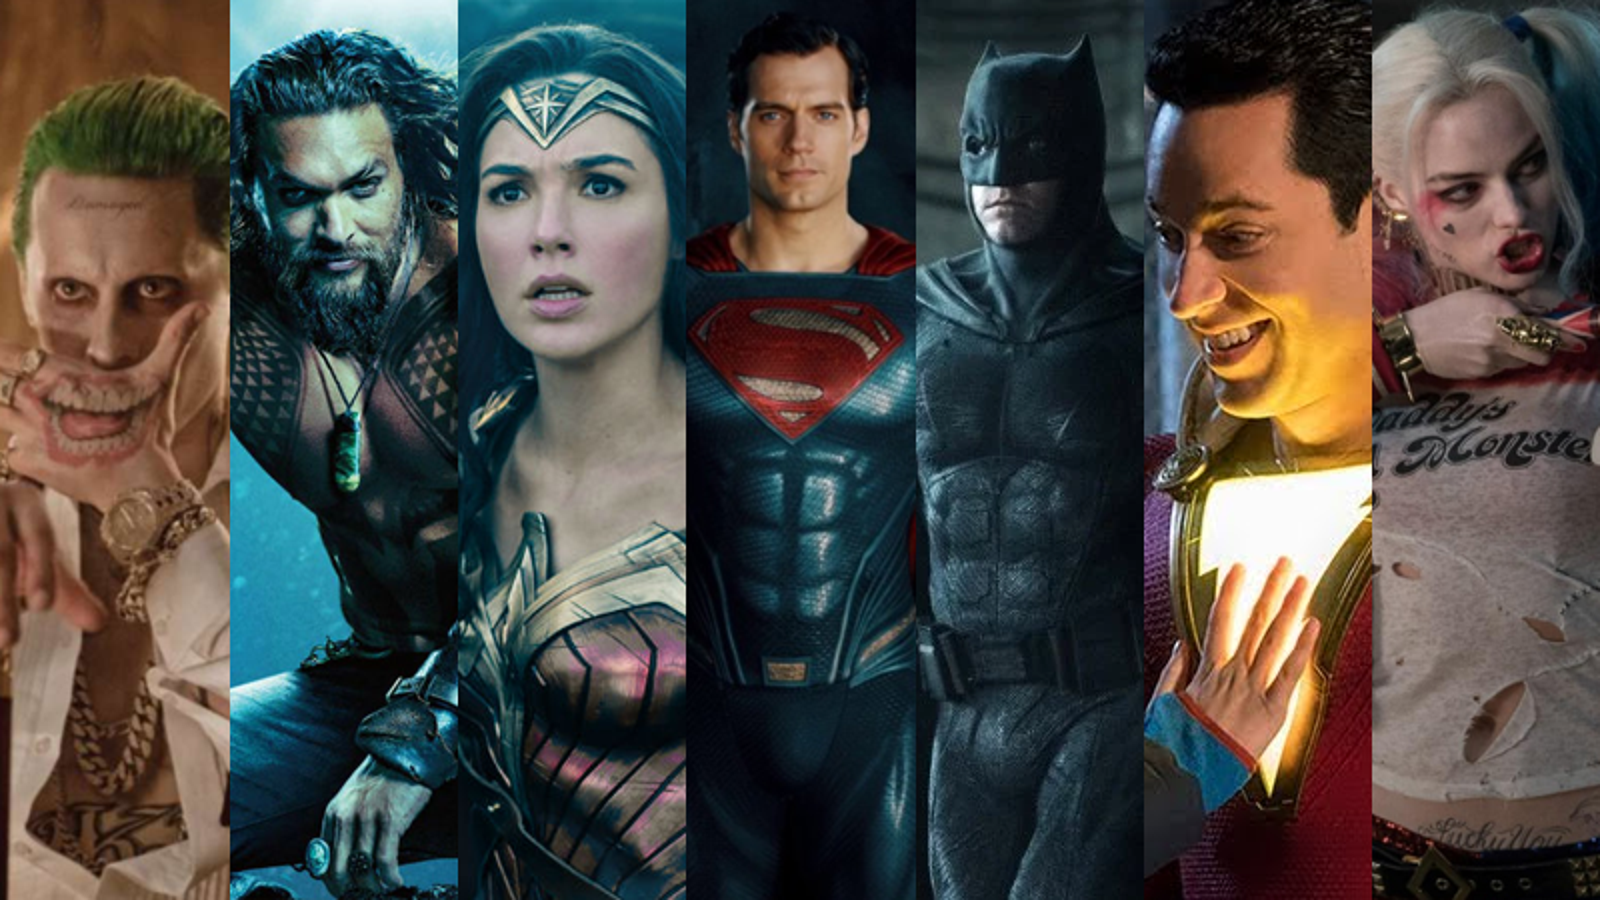 Dc 2019 Movies Poster: Everything You Need To Know About DC Movies In Progress